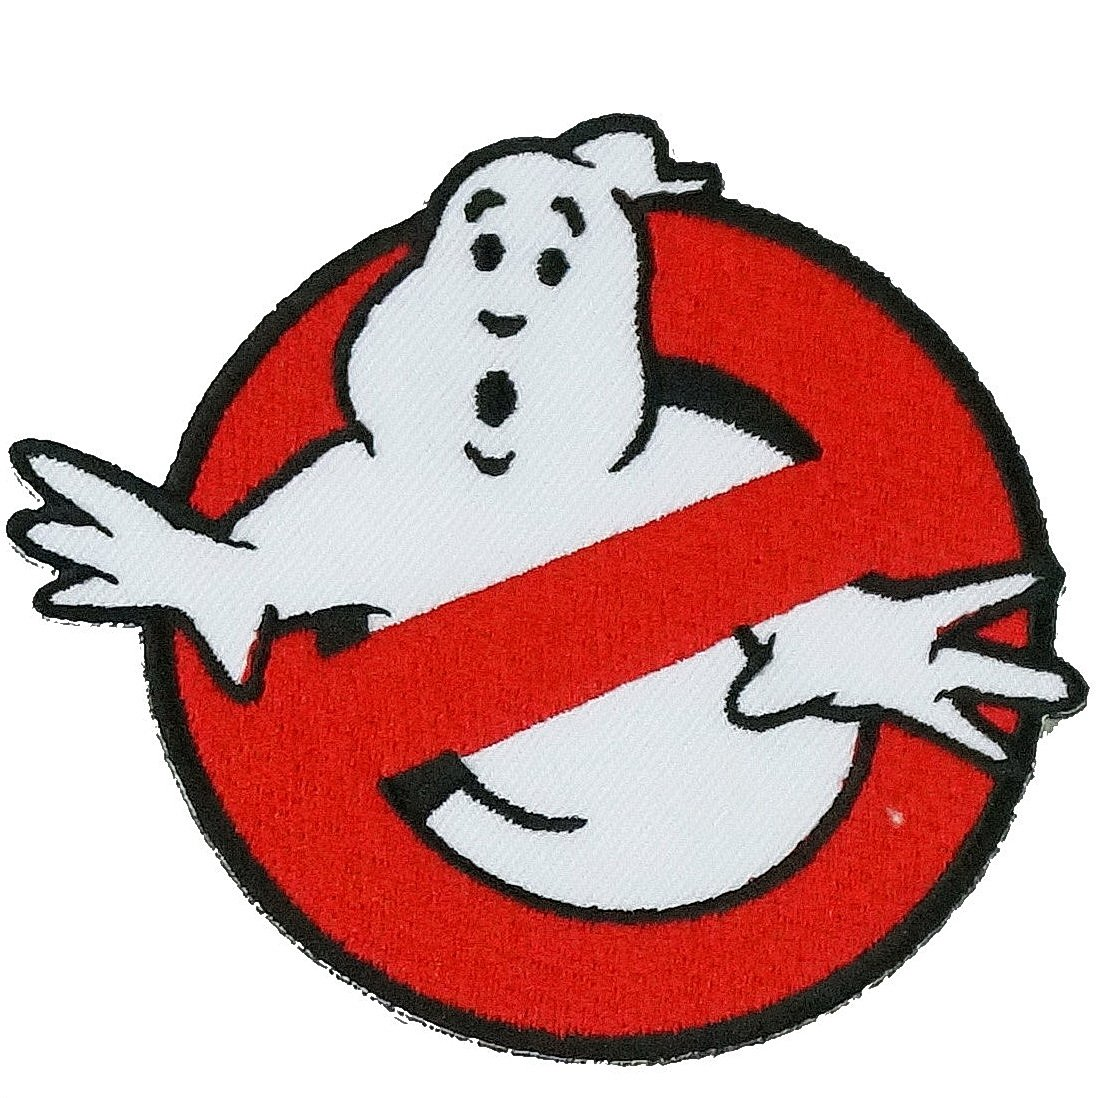 Graphic Dust Lot of 3 Ghostbusters Embroidered Iron On Patches and 1 Heart Patch (Green)